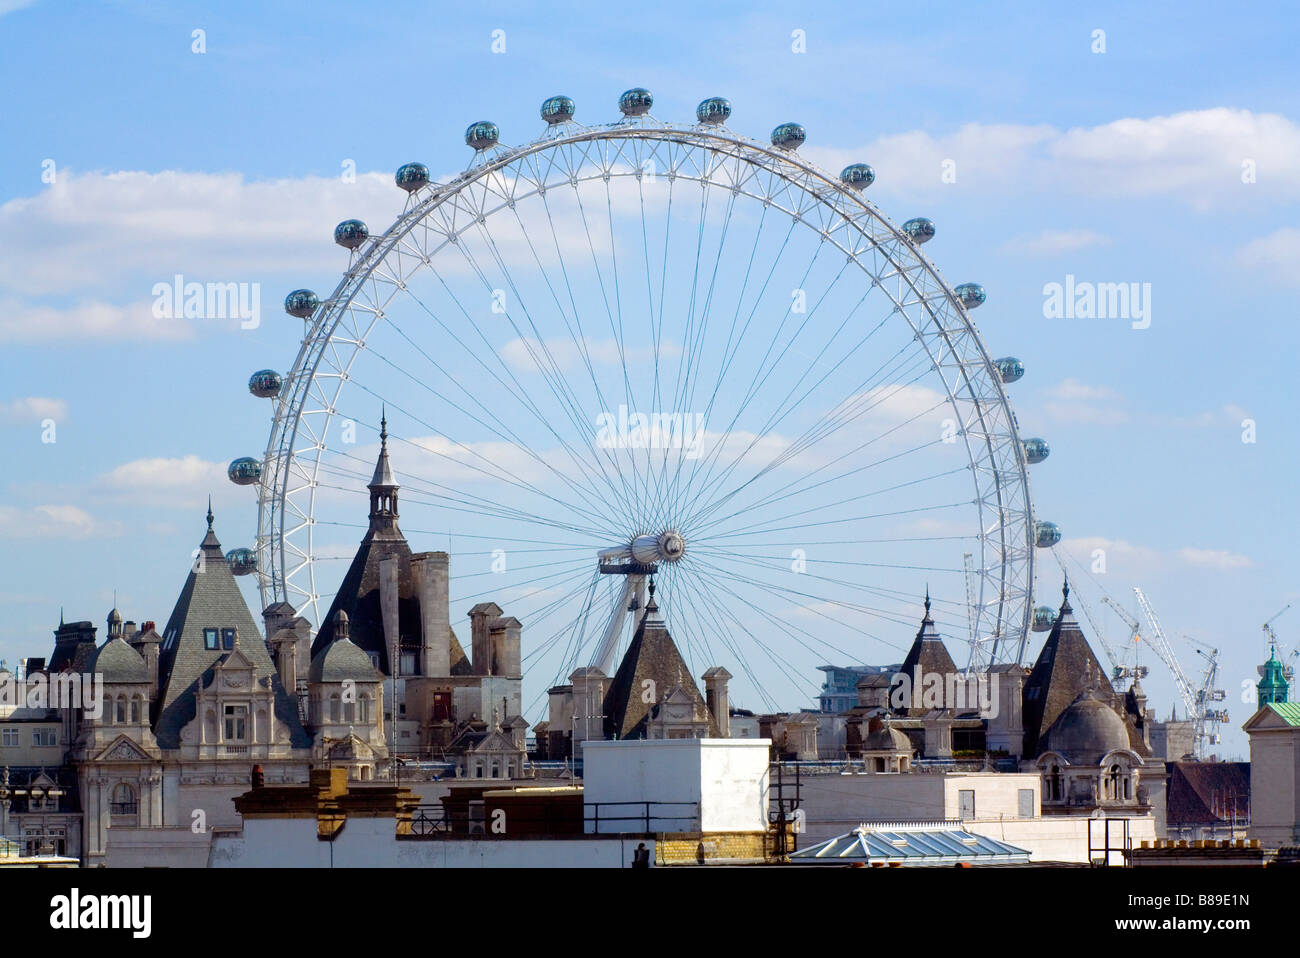 The London eye seen across the Rooftops of Westminster - Stock Image